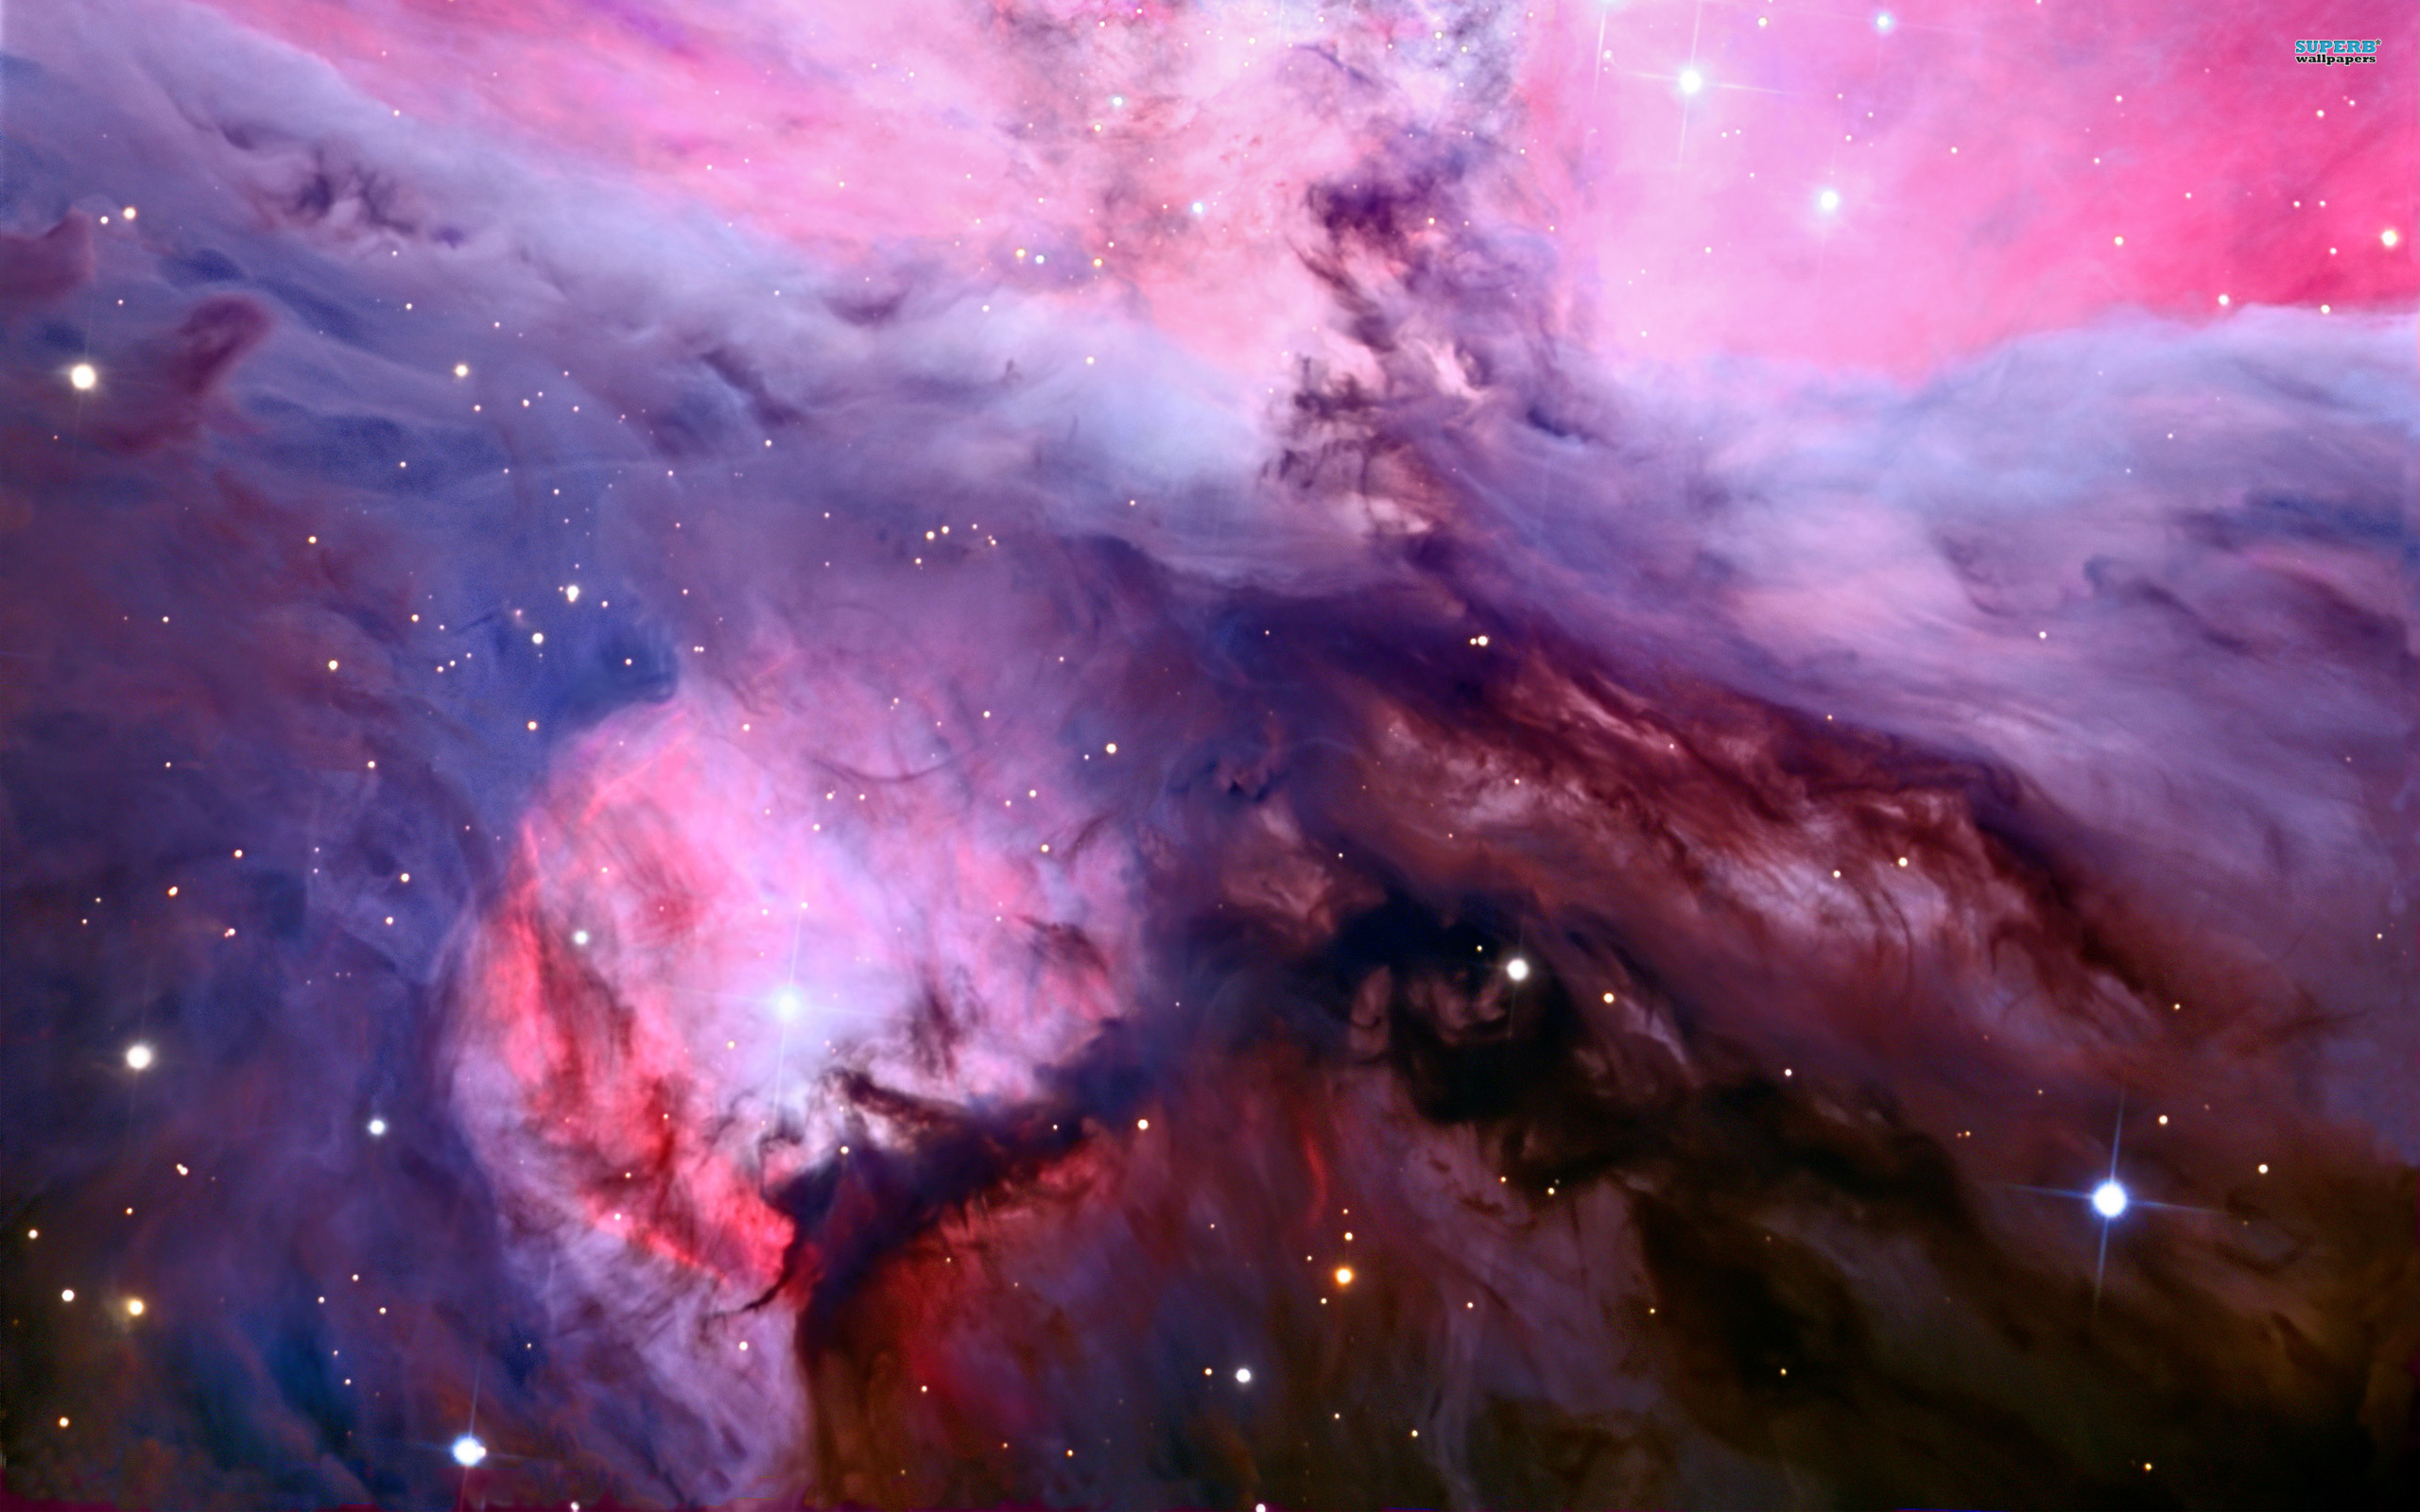 Space orion nebula